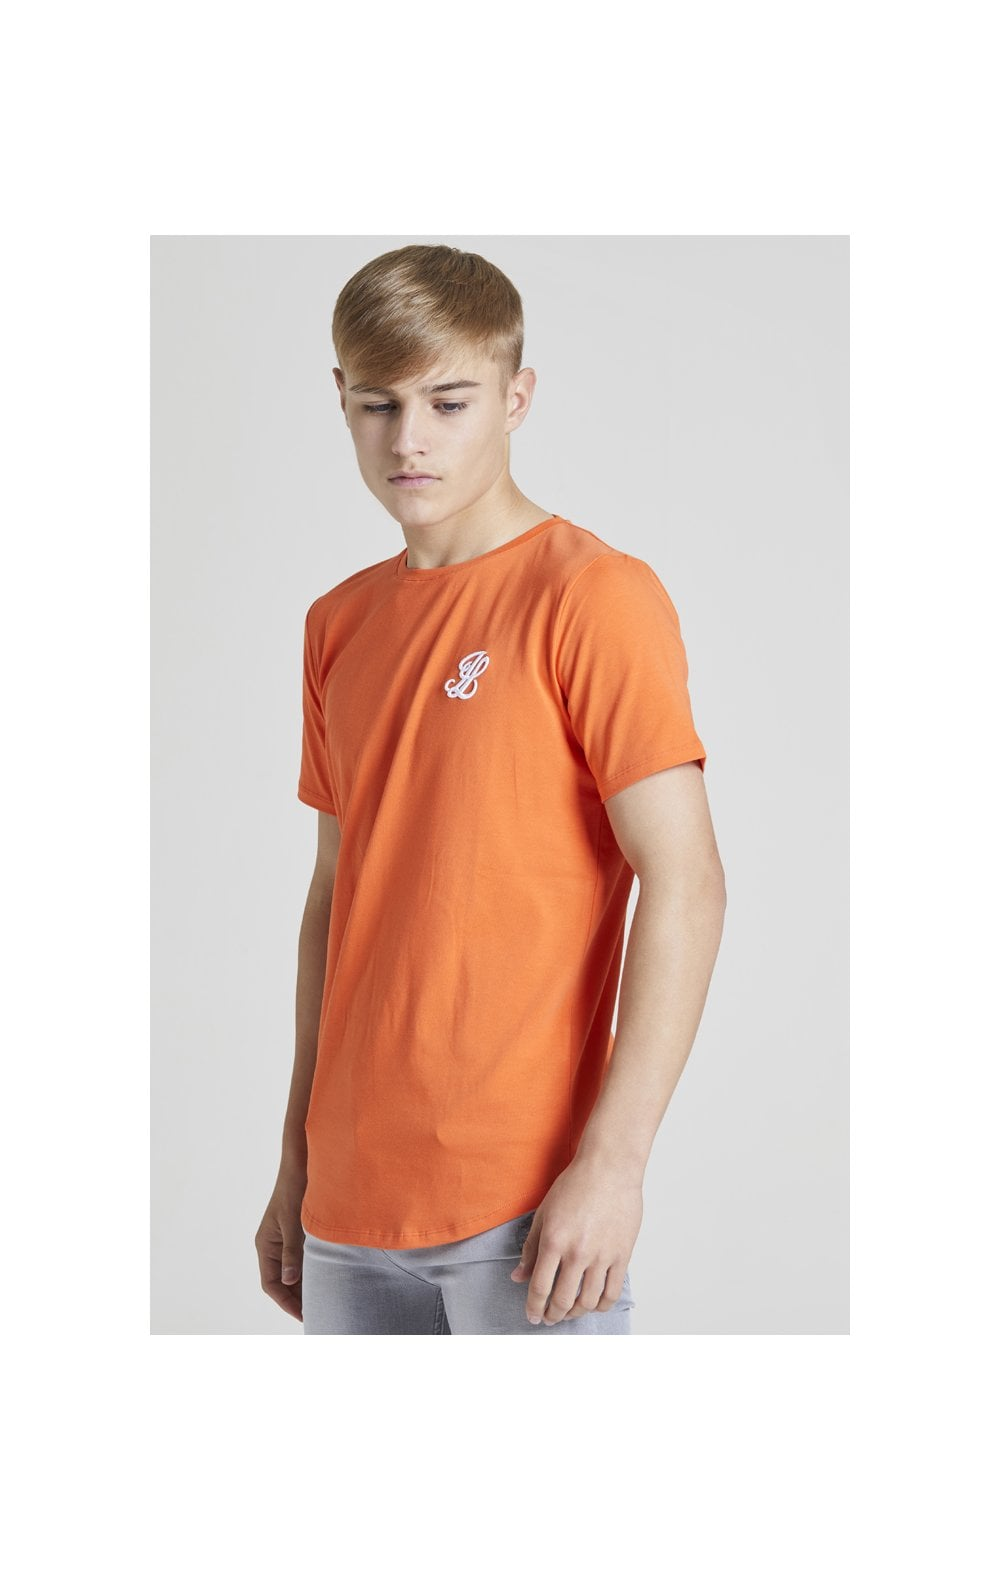 Illusive London Core Tee - Orange (1)